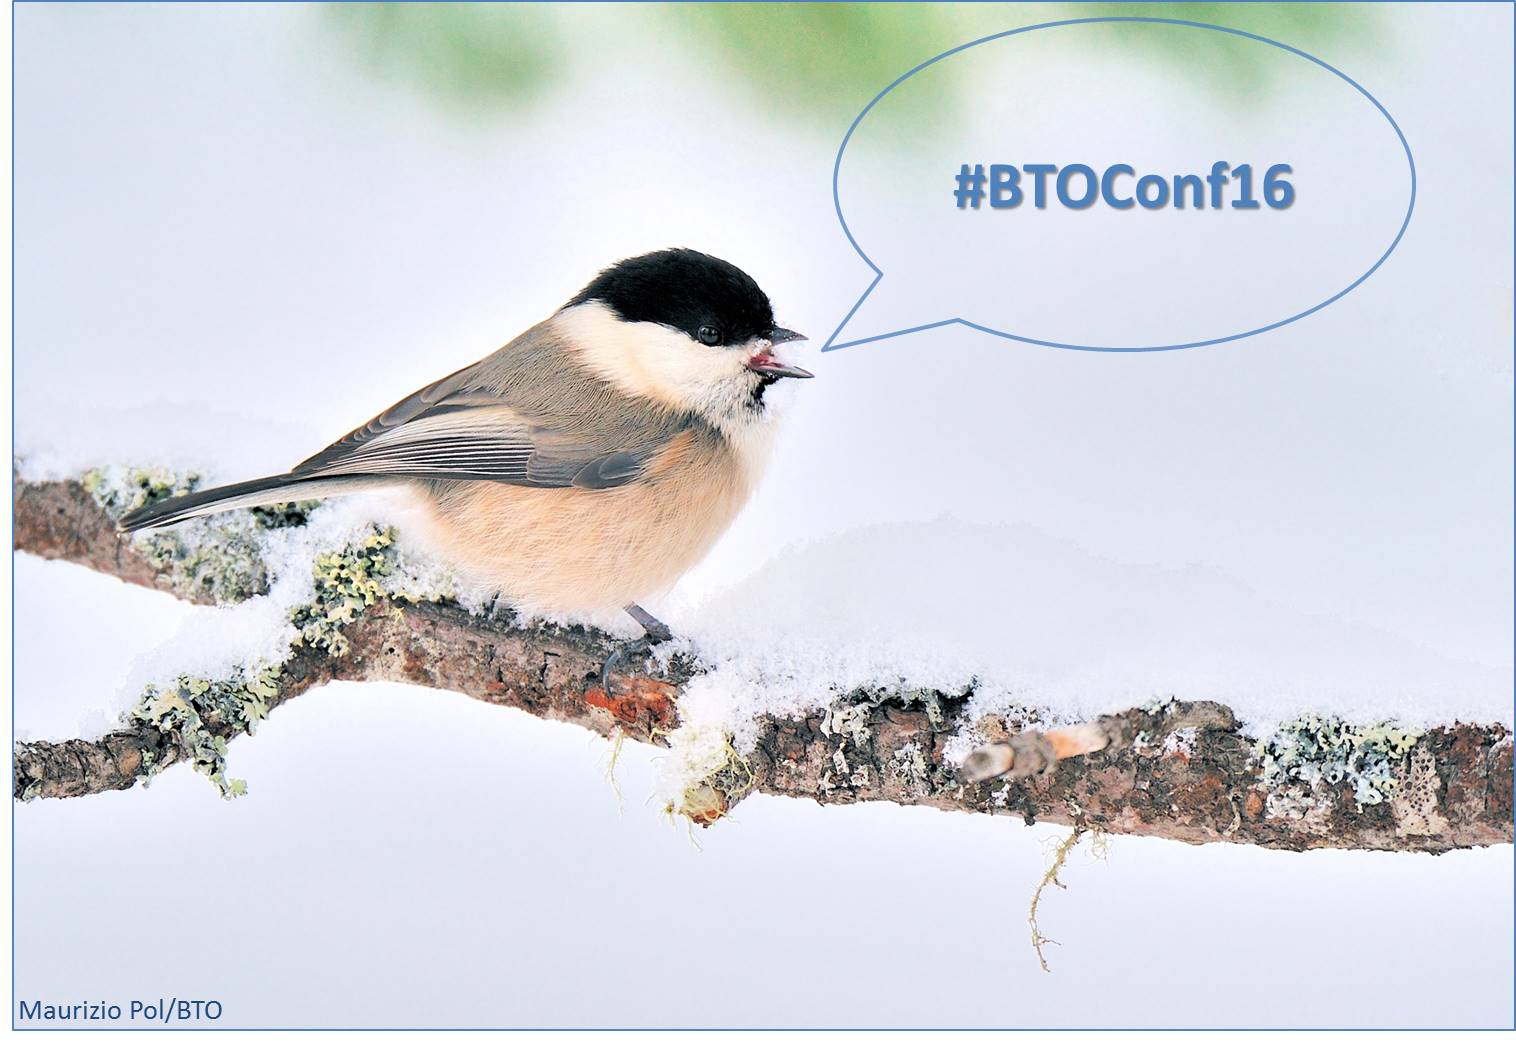 We can't wait for our annual conference in Derbyshire this weekend. Follow #BTOConf16 for all the news: https://t.co/rVYecJJeEJ https://t.co/R5JB1EA3nl